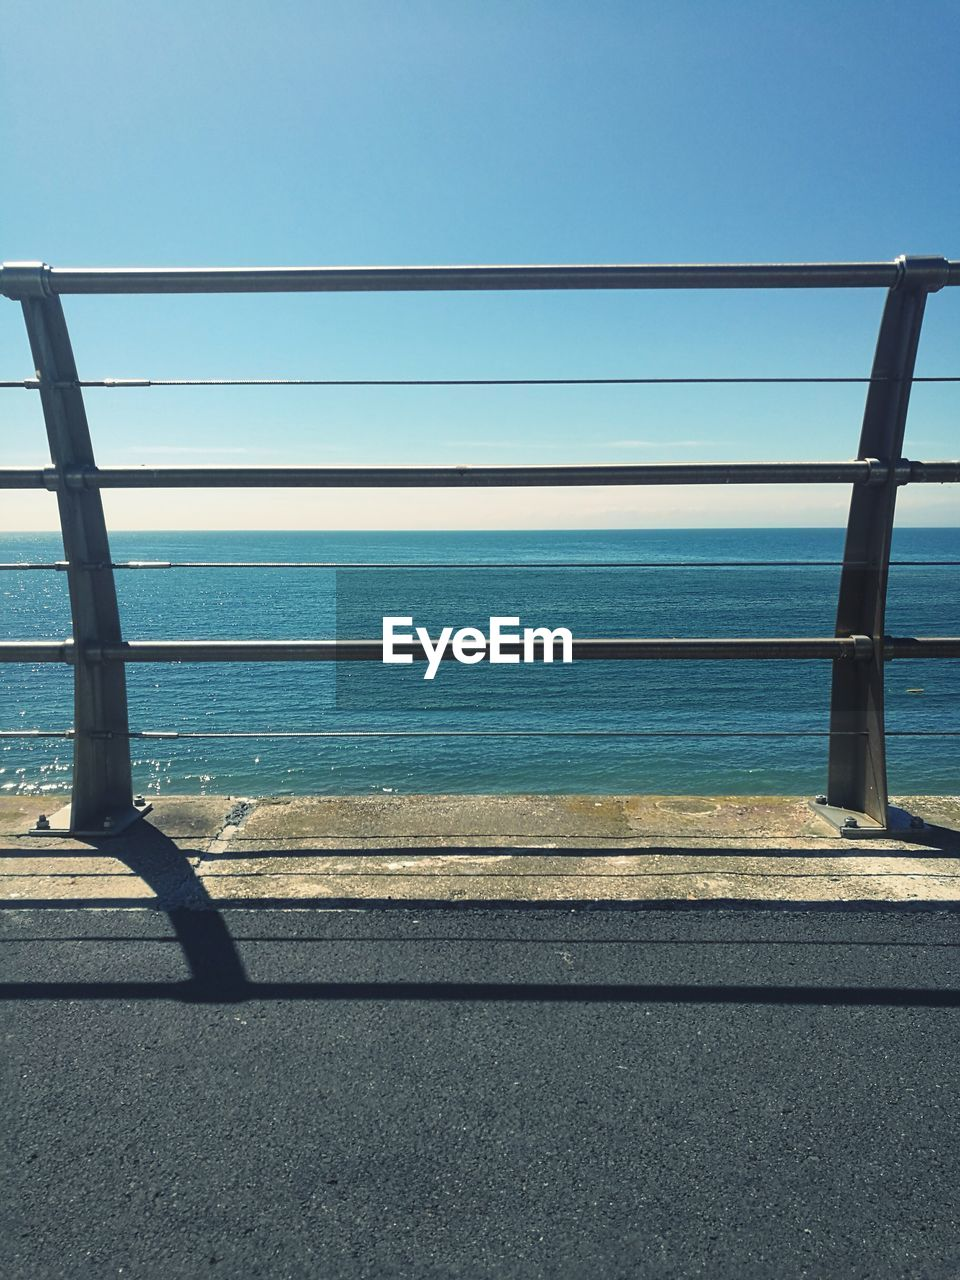 water, sea, railing, no people, scenics, clear sky, nature, day, sunlight, outdoors, road, blue, horizon over water, beauty in nature, sky